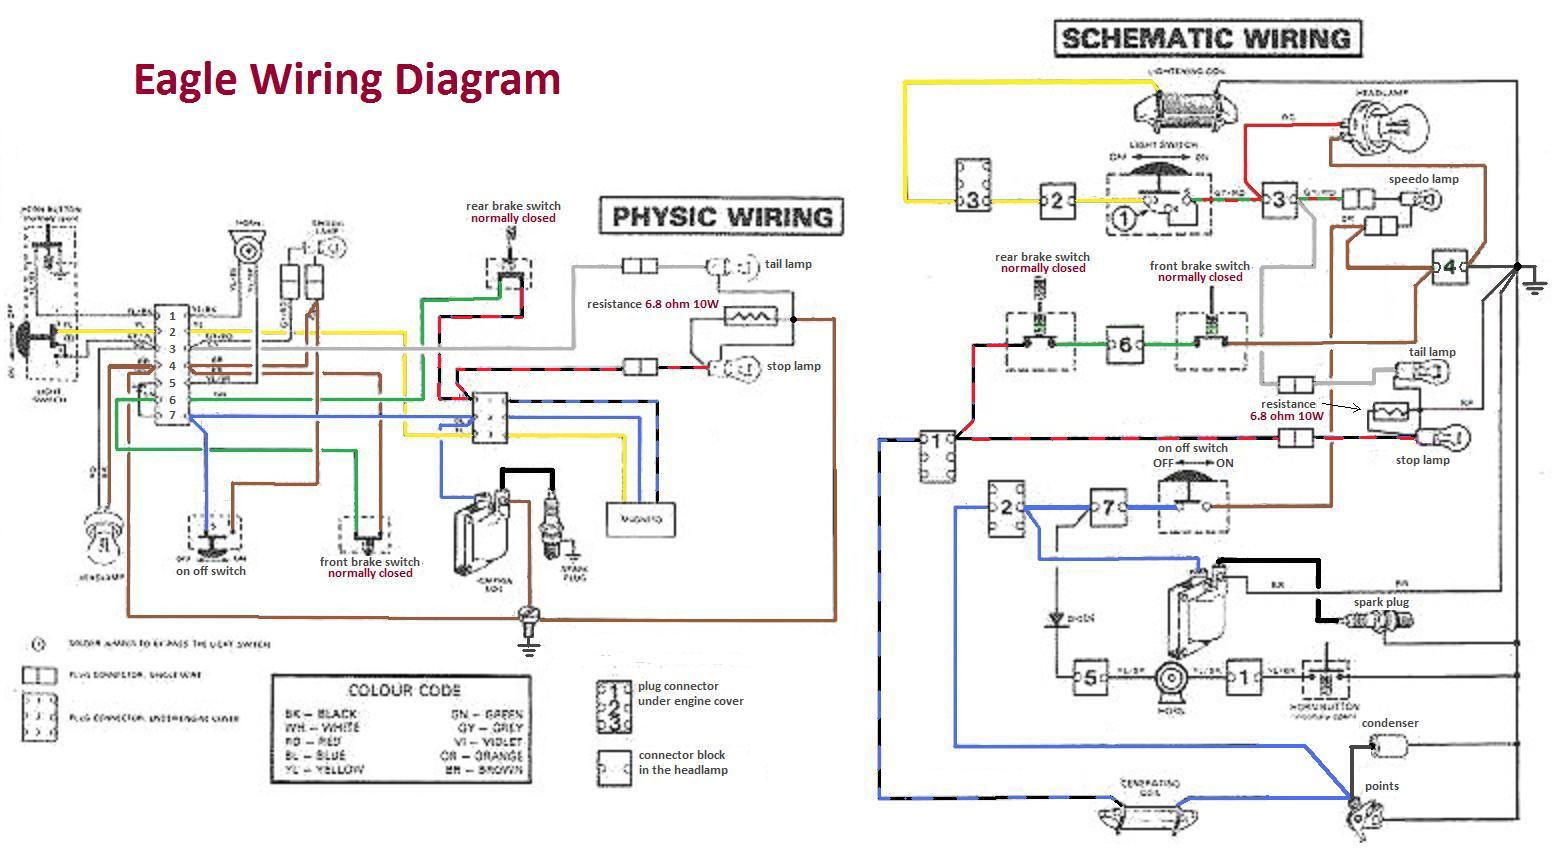 Wiring Diagrams A To Z For Thee   U00ab Myrons Mopeds